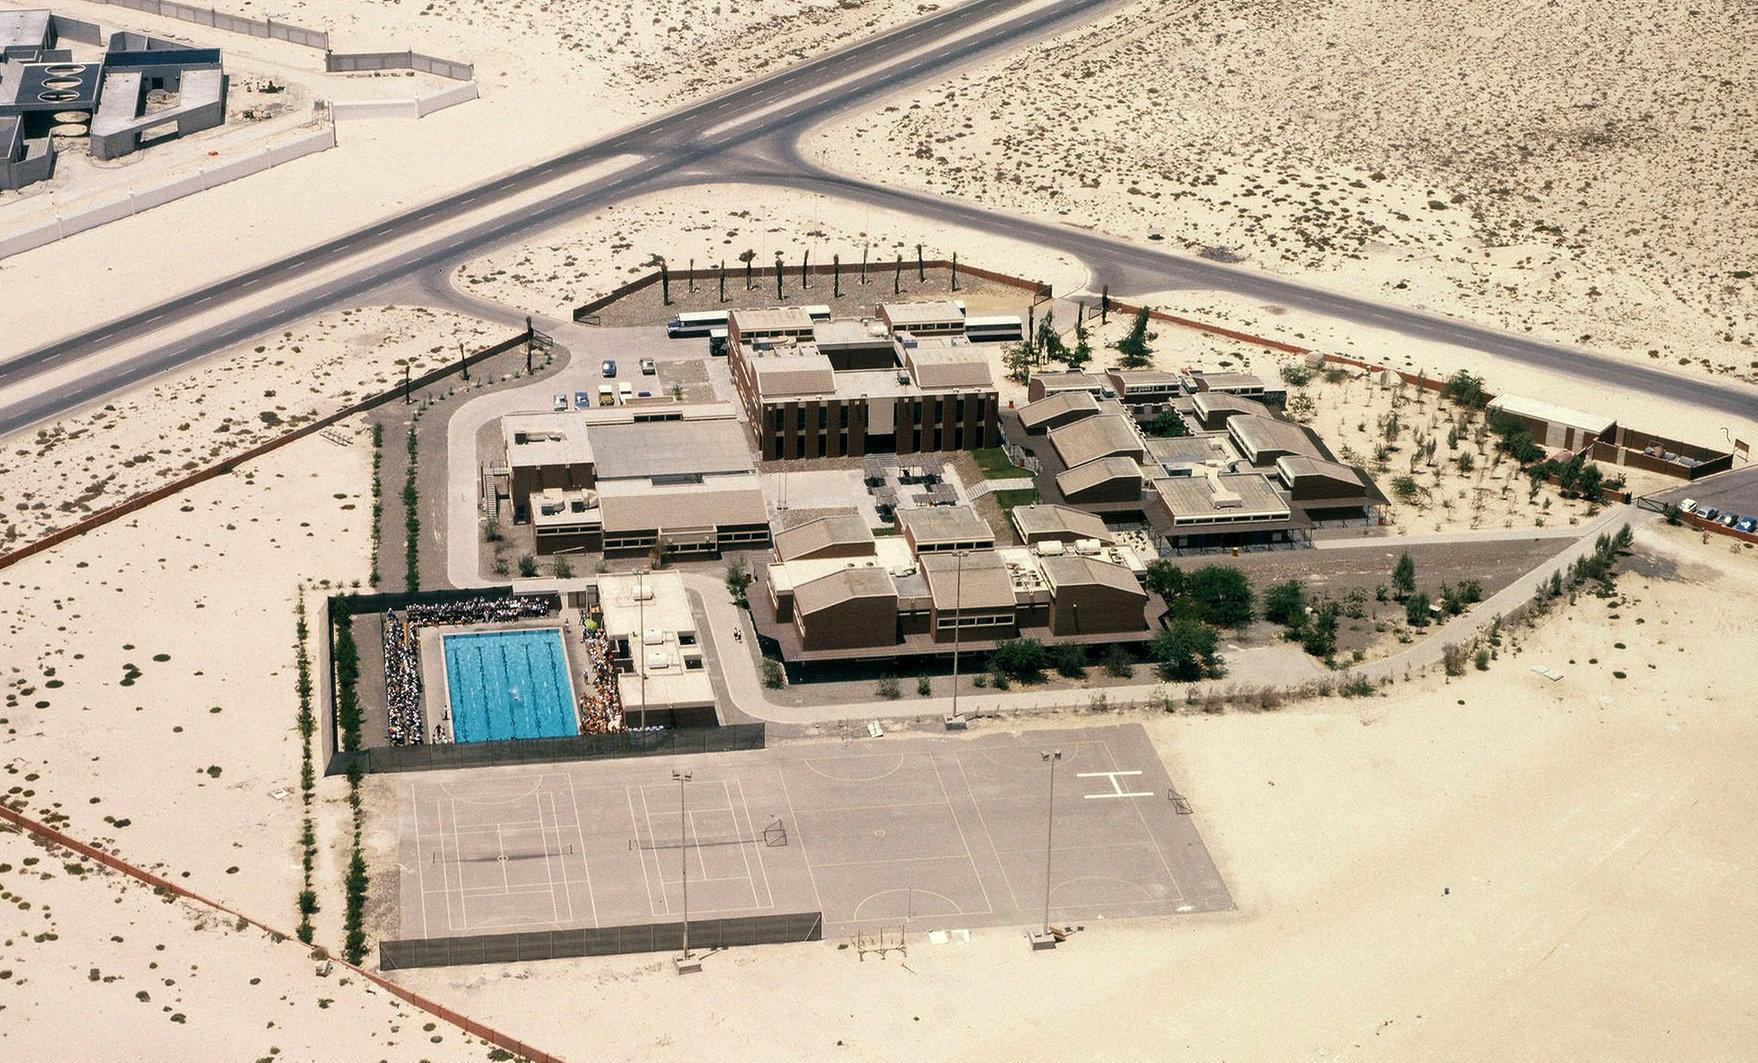 Dubai College aerial shot